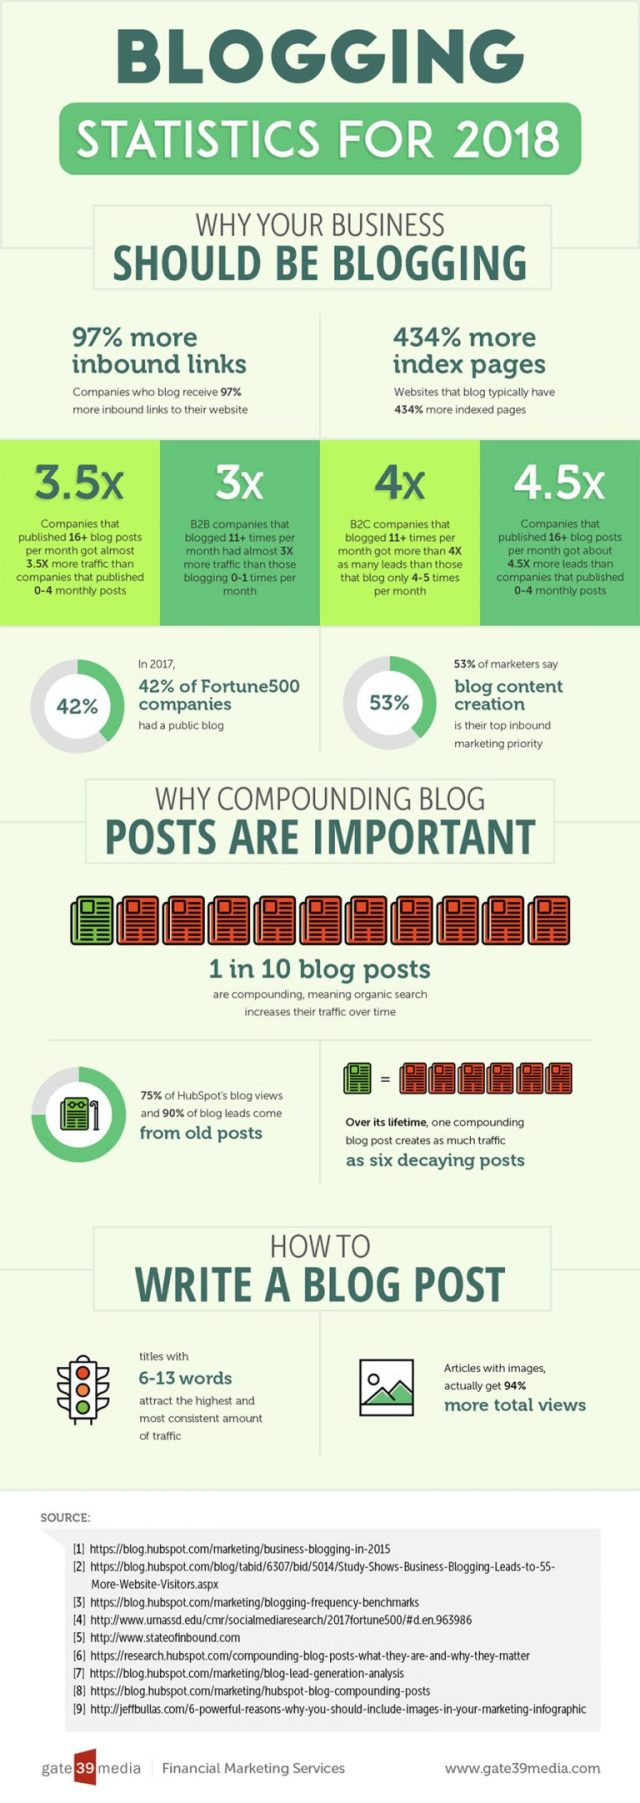 How to Write a Blog Post That Goes Viral In 9 Easy Steps #bloggingtips #blogtips #bloging #blogging #contentmarketing #contentmarketingtips #marketingstrategy #infographic #bloggingstatistics #bloggingforbeginners #blogtraffic #contentcreation